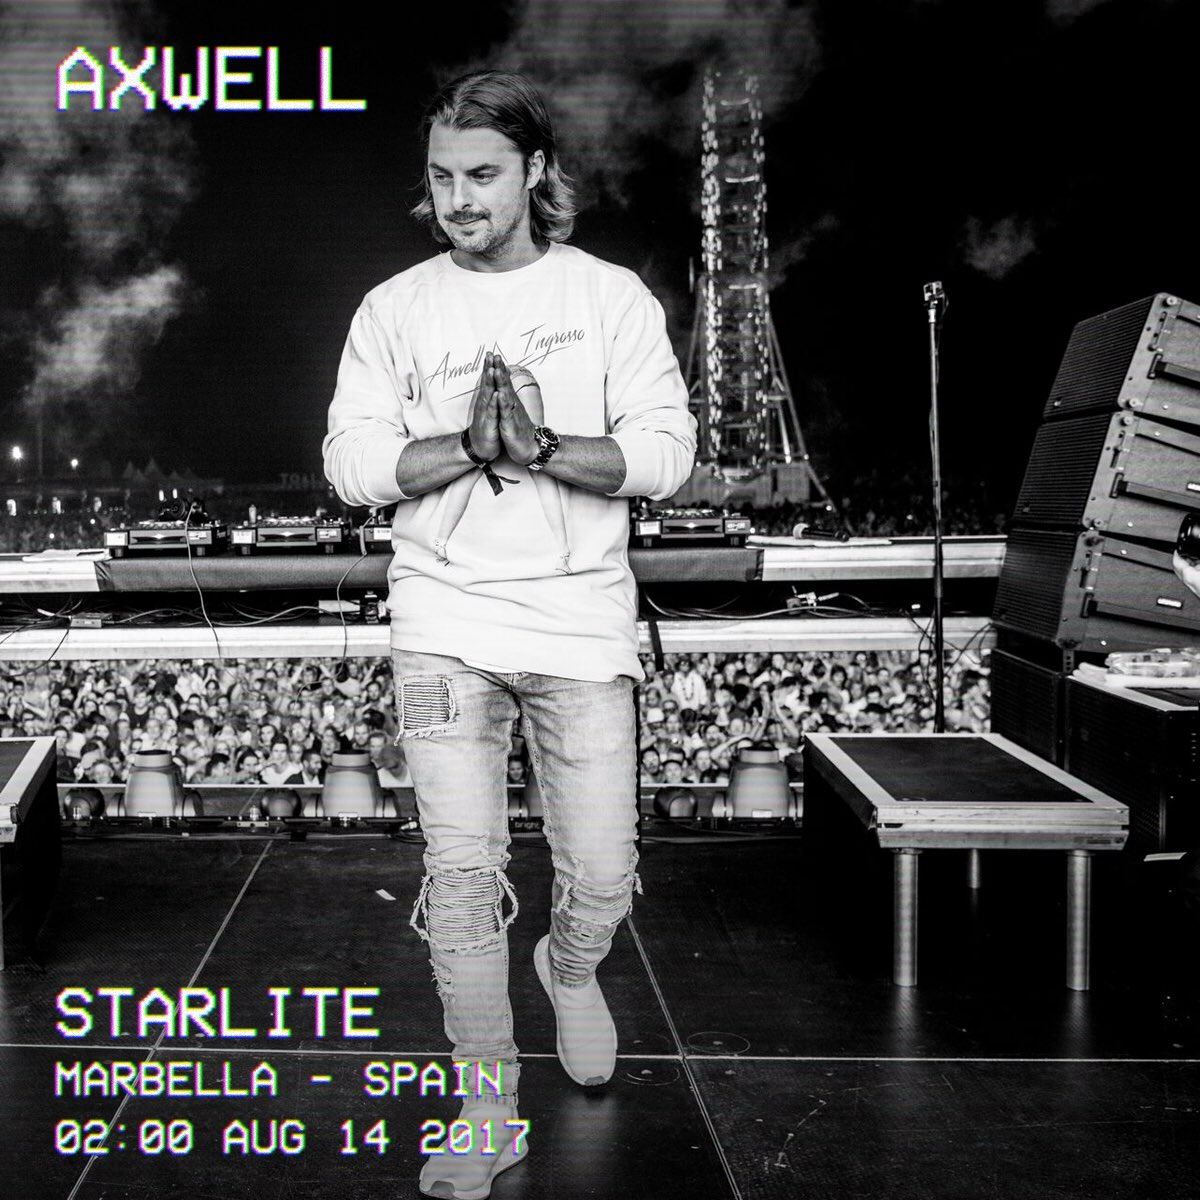 It's on Marbella!!! See you at Starlite 🤙🏽